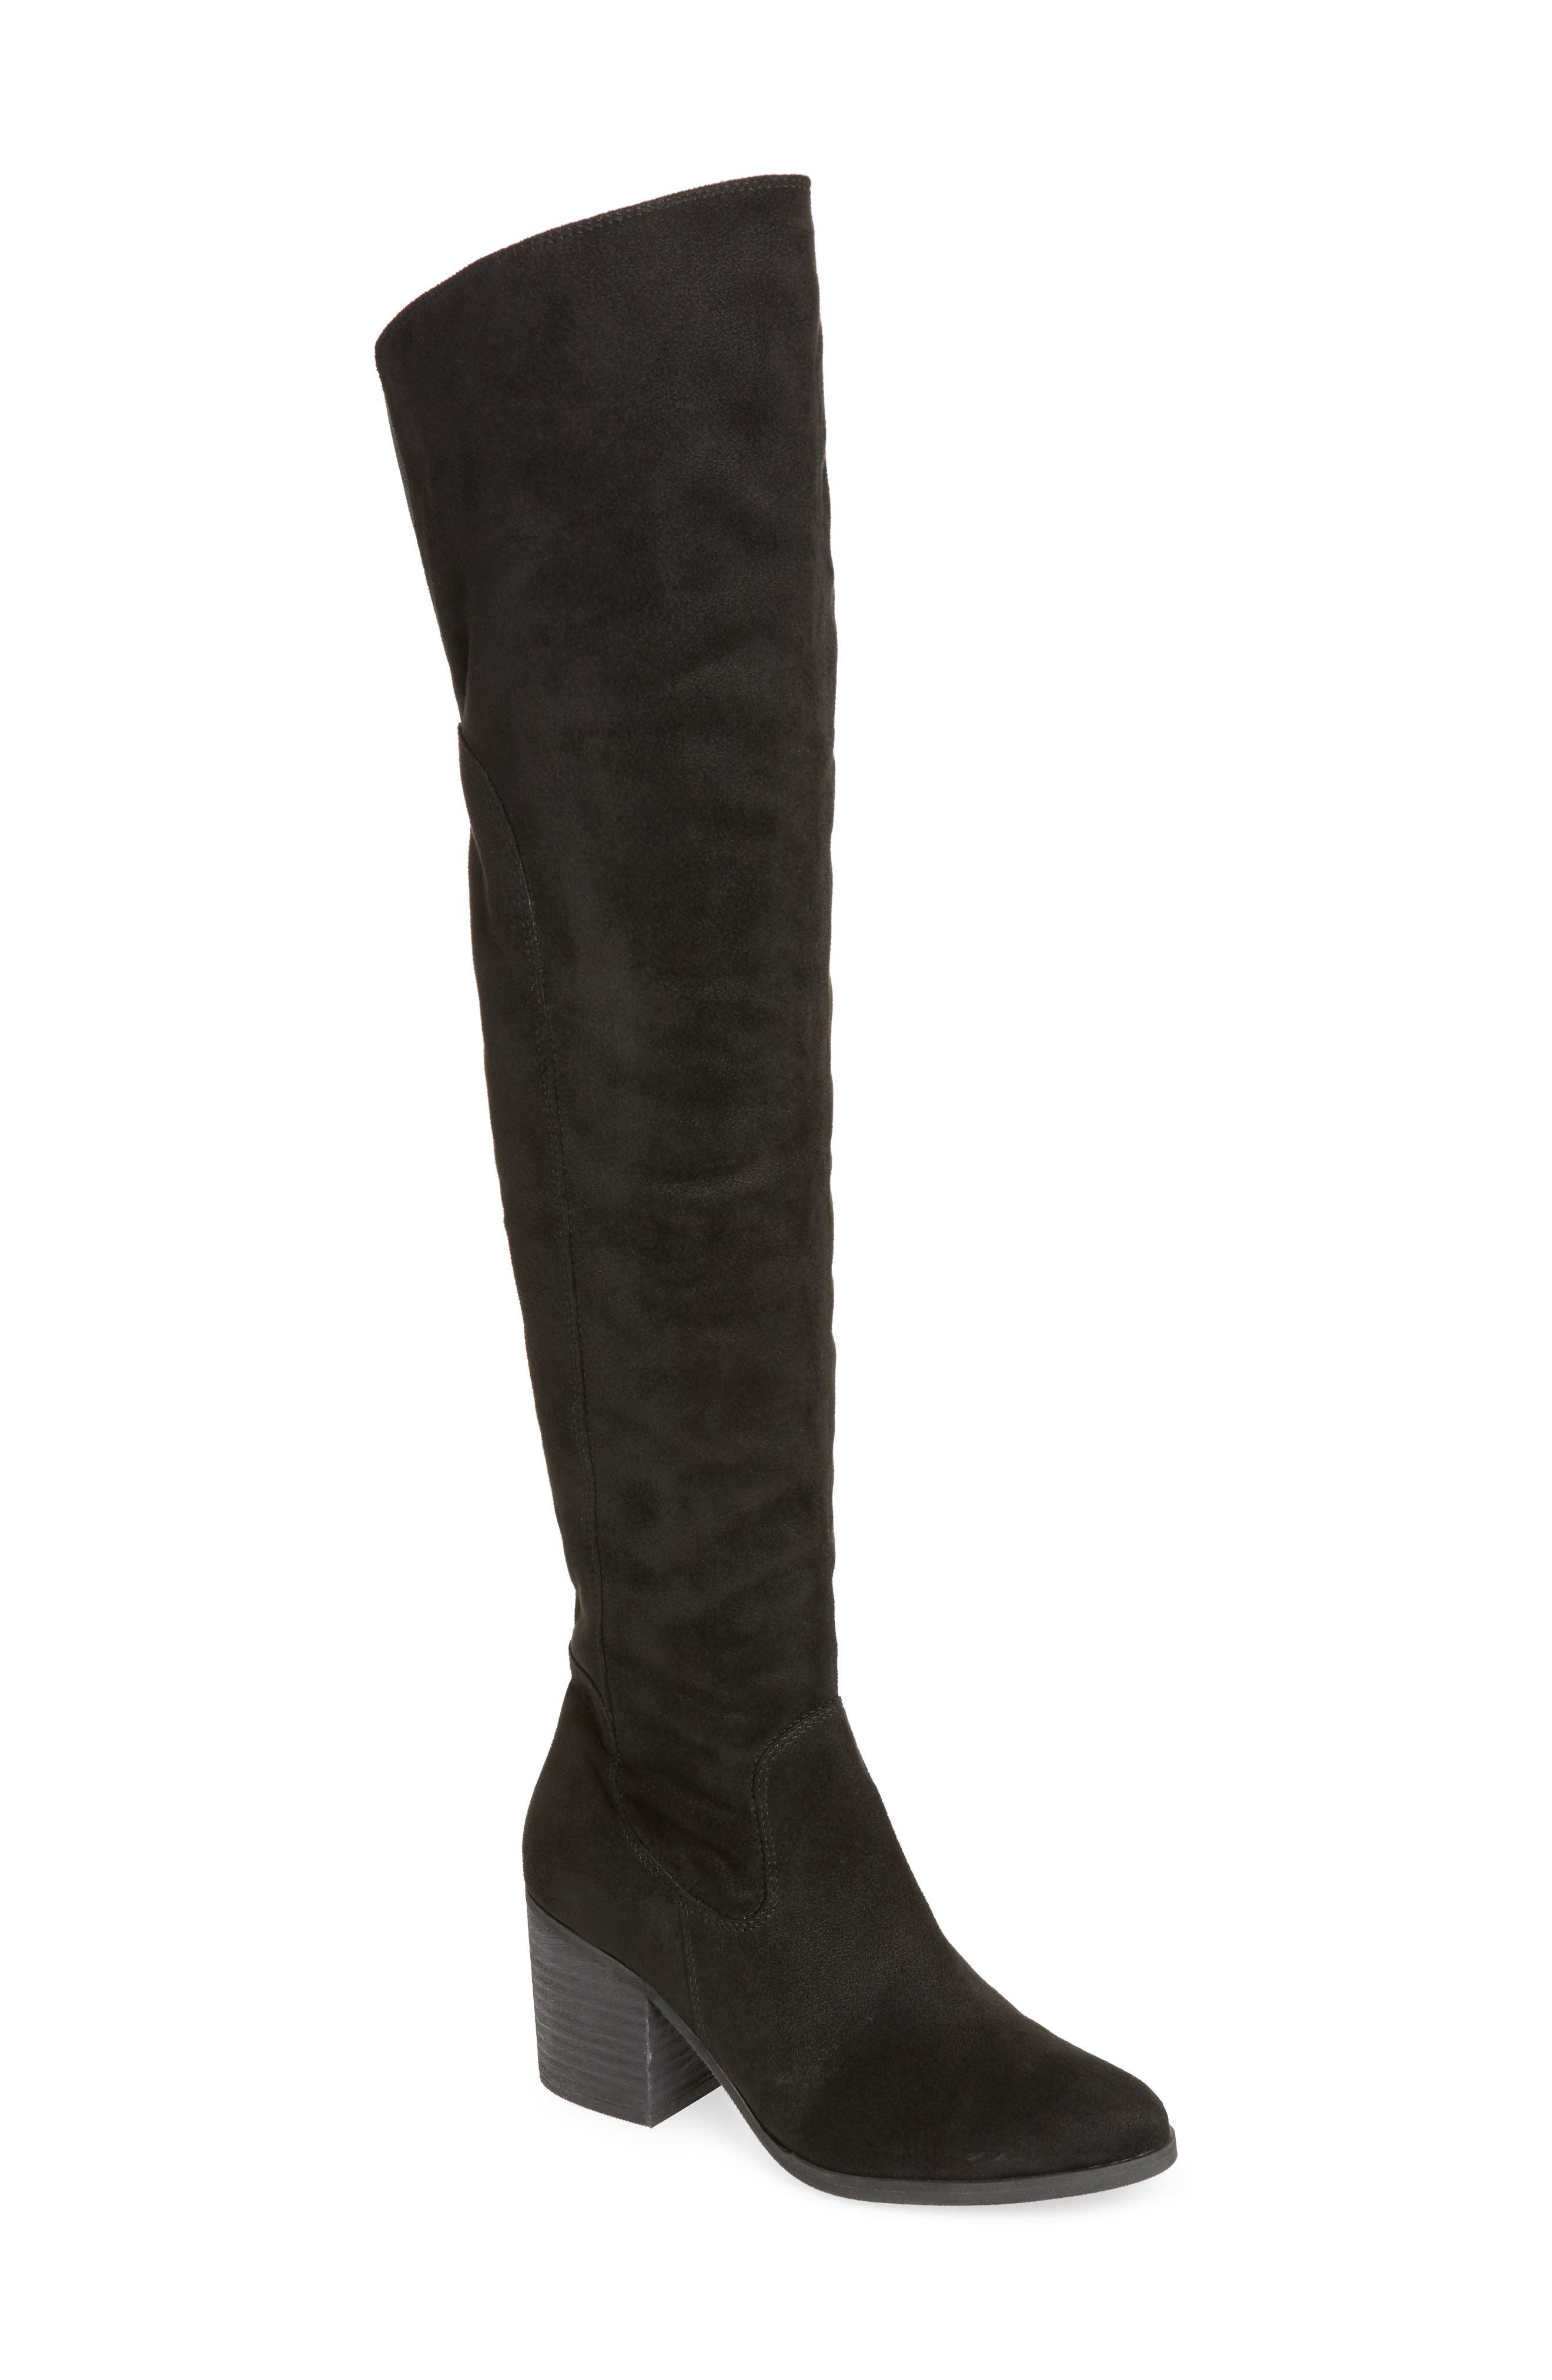 Logan Over the Knee Boot,                             Main thumbnail 1, color,                             001